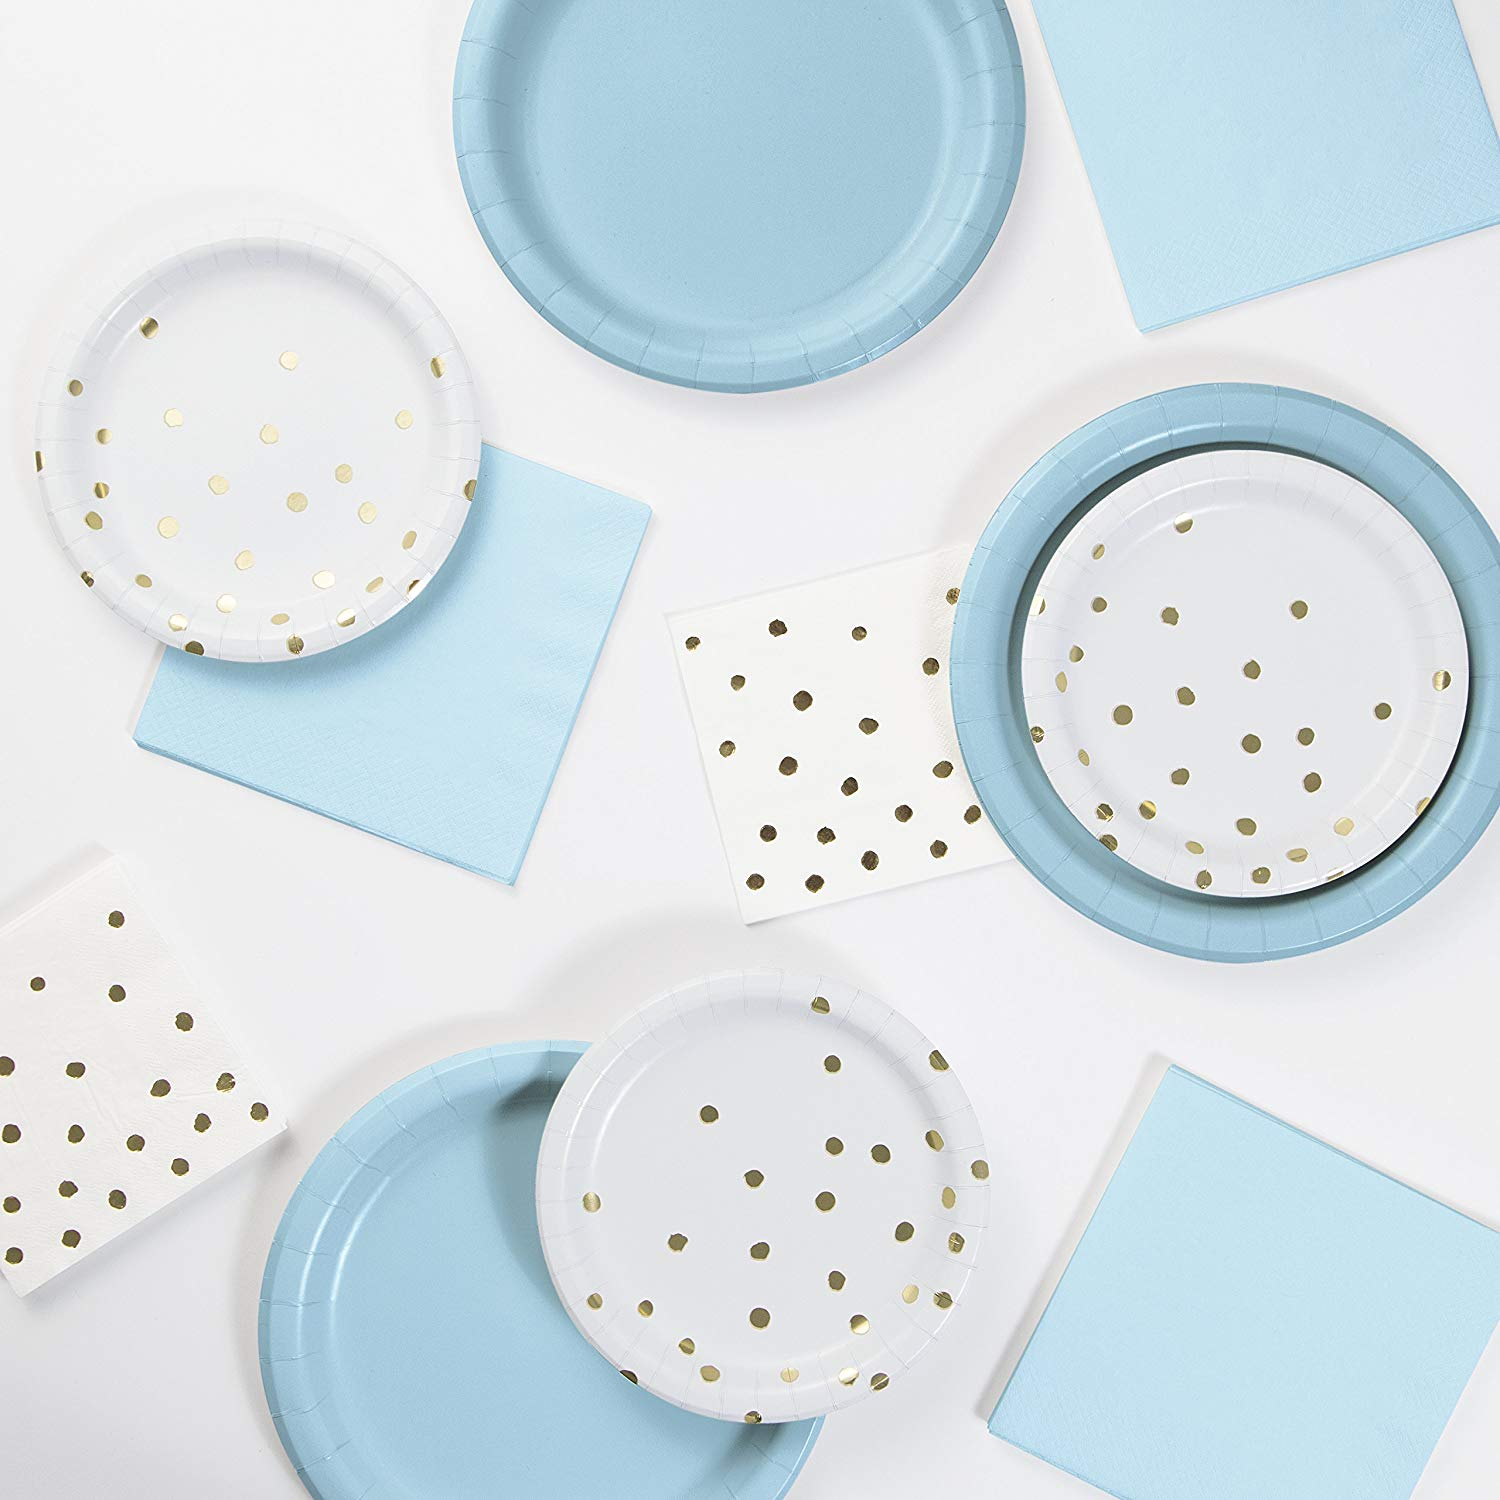 Pastel Blue, White and Gold Foil Party Pack